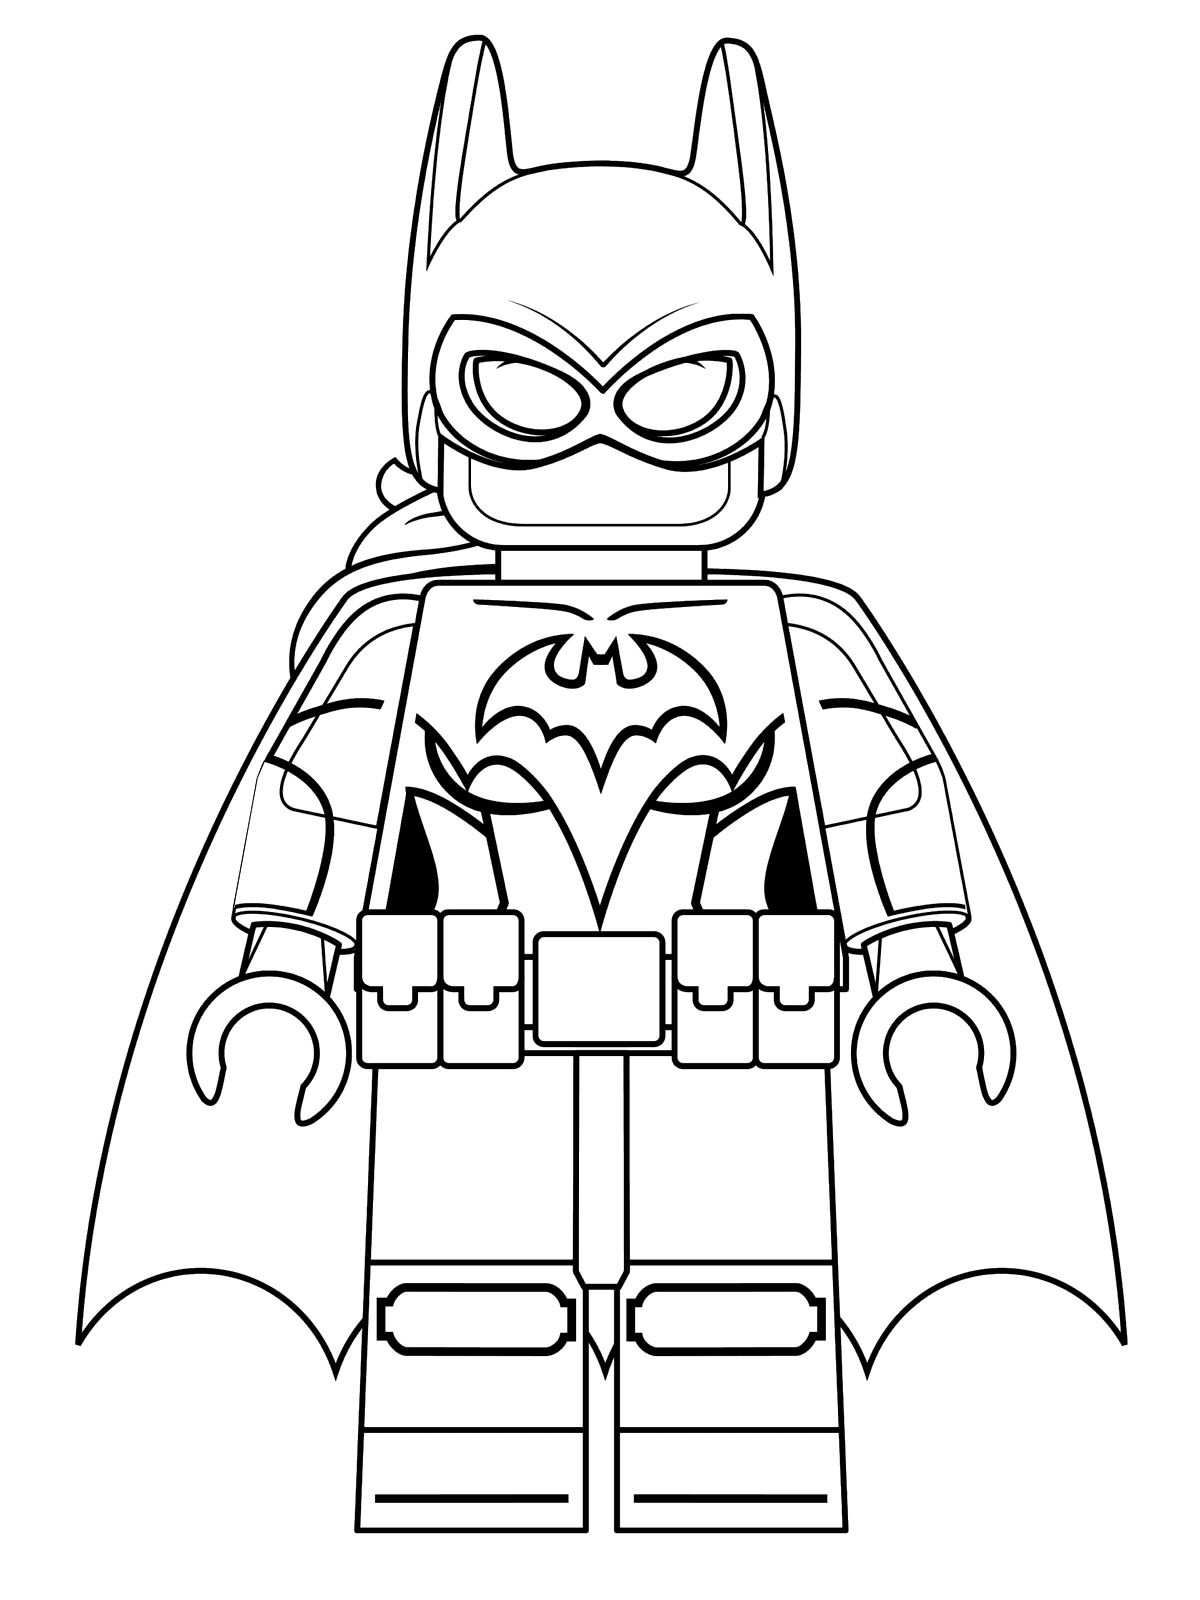 16 Coloring Pages Of Lego Batman Movie On Kids N Fun Co Uk On